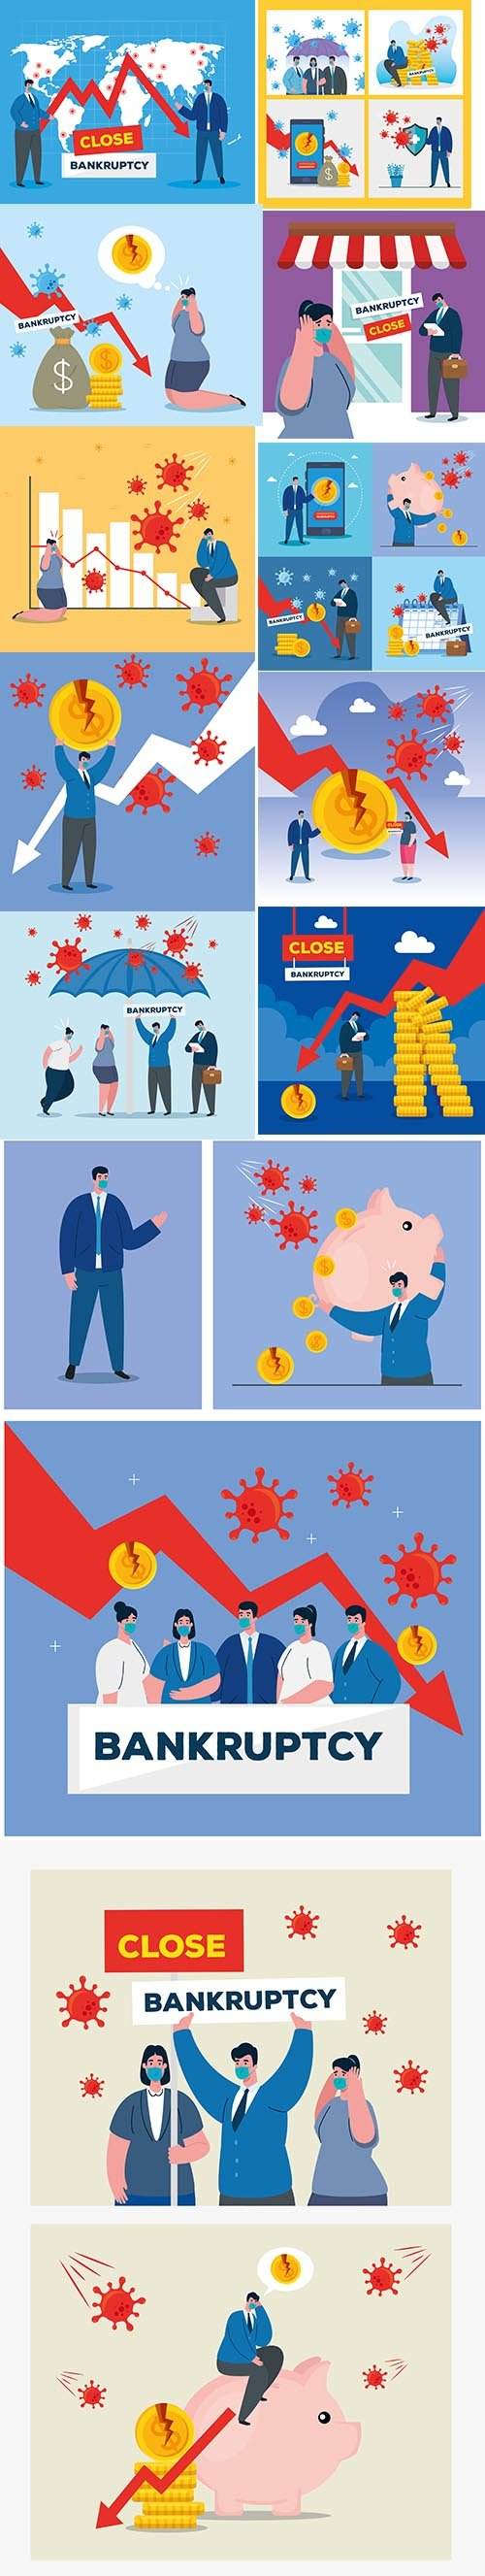 Business People Concept Illustration